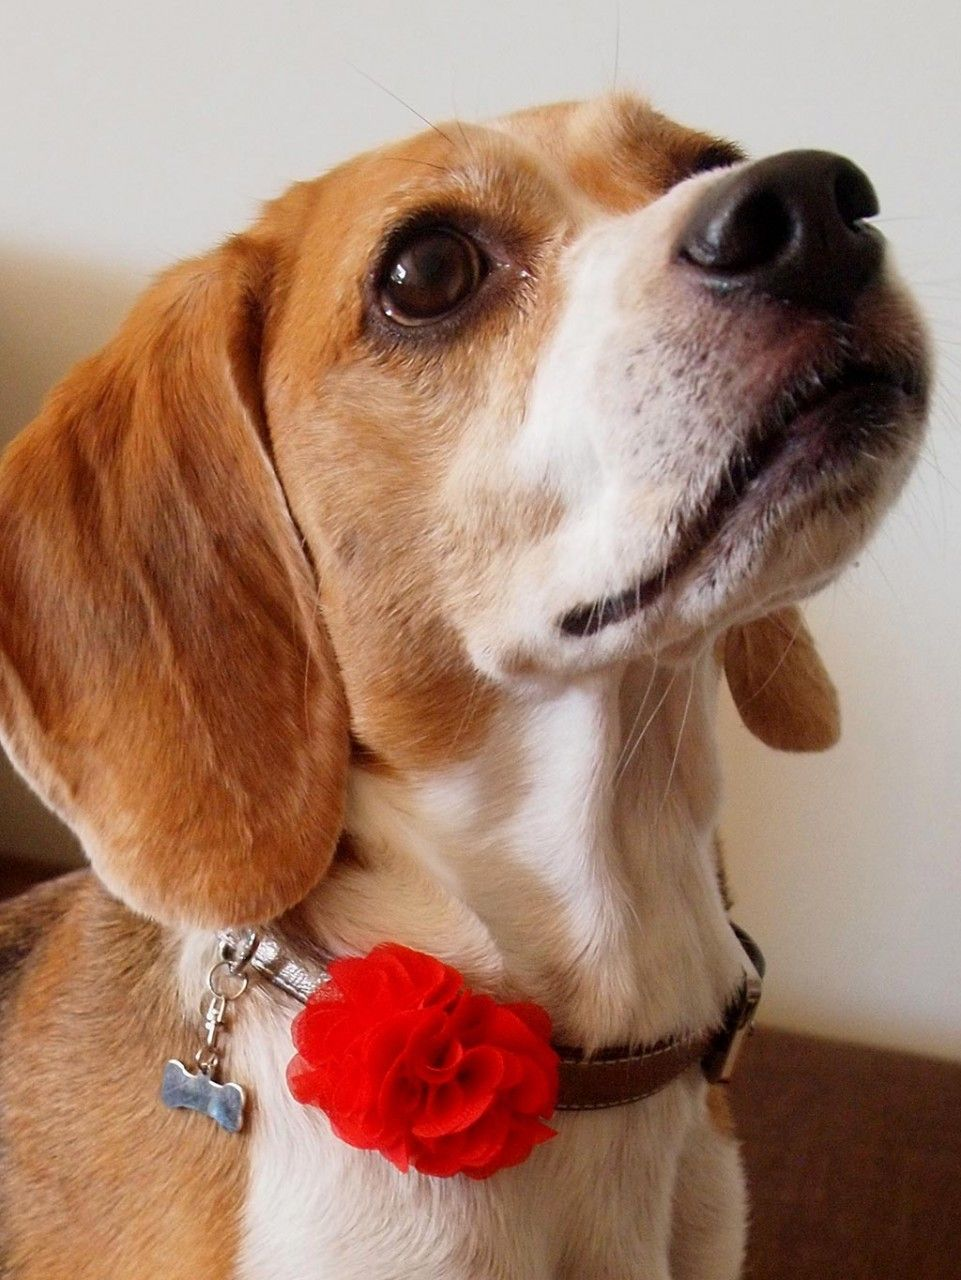 Florette Floral Collar Sliders Pet Products Dogs Puppy Dog